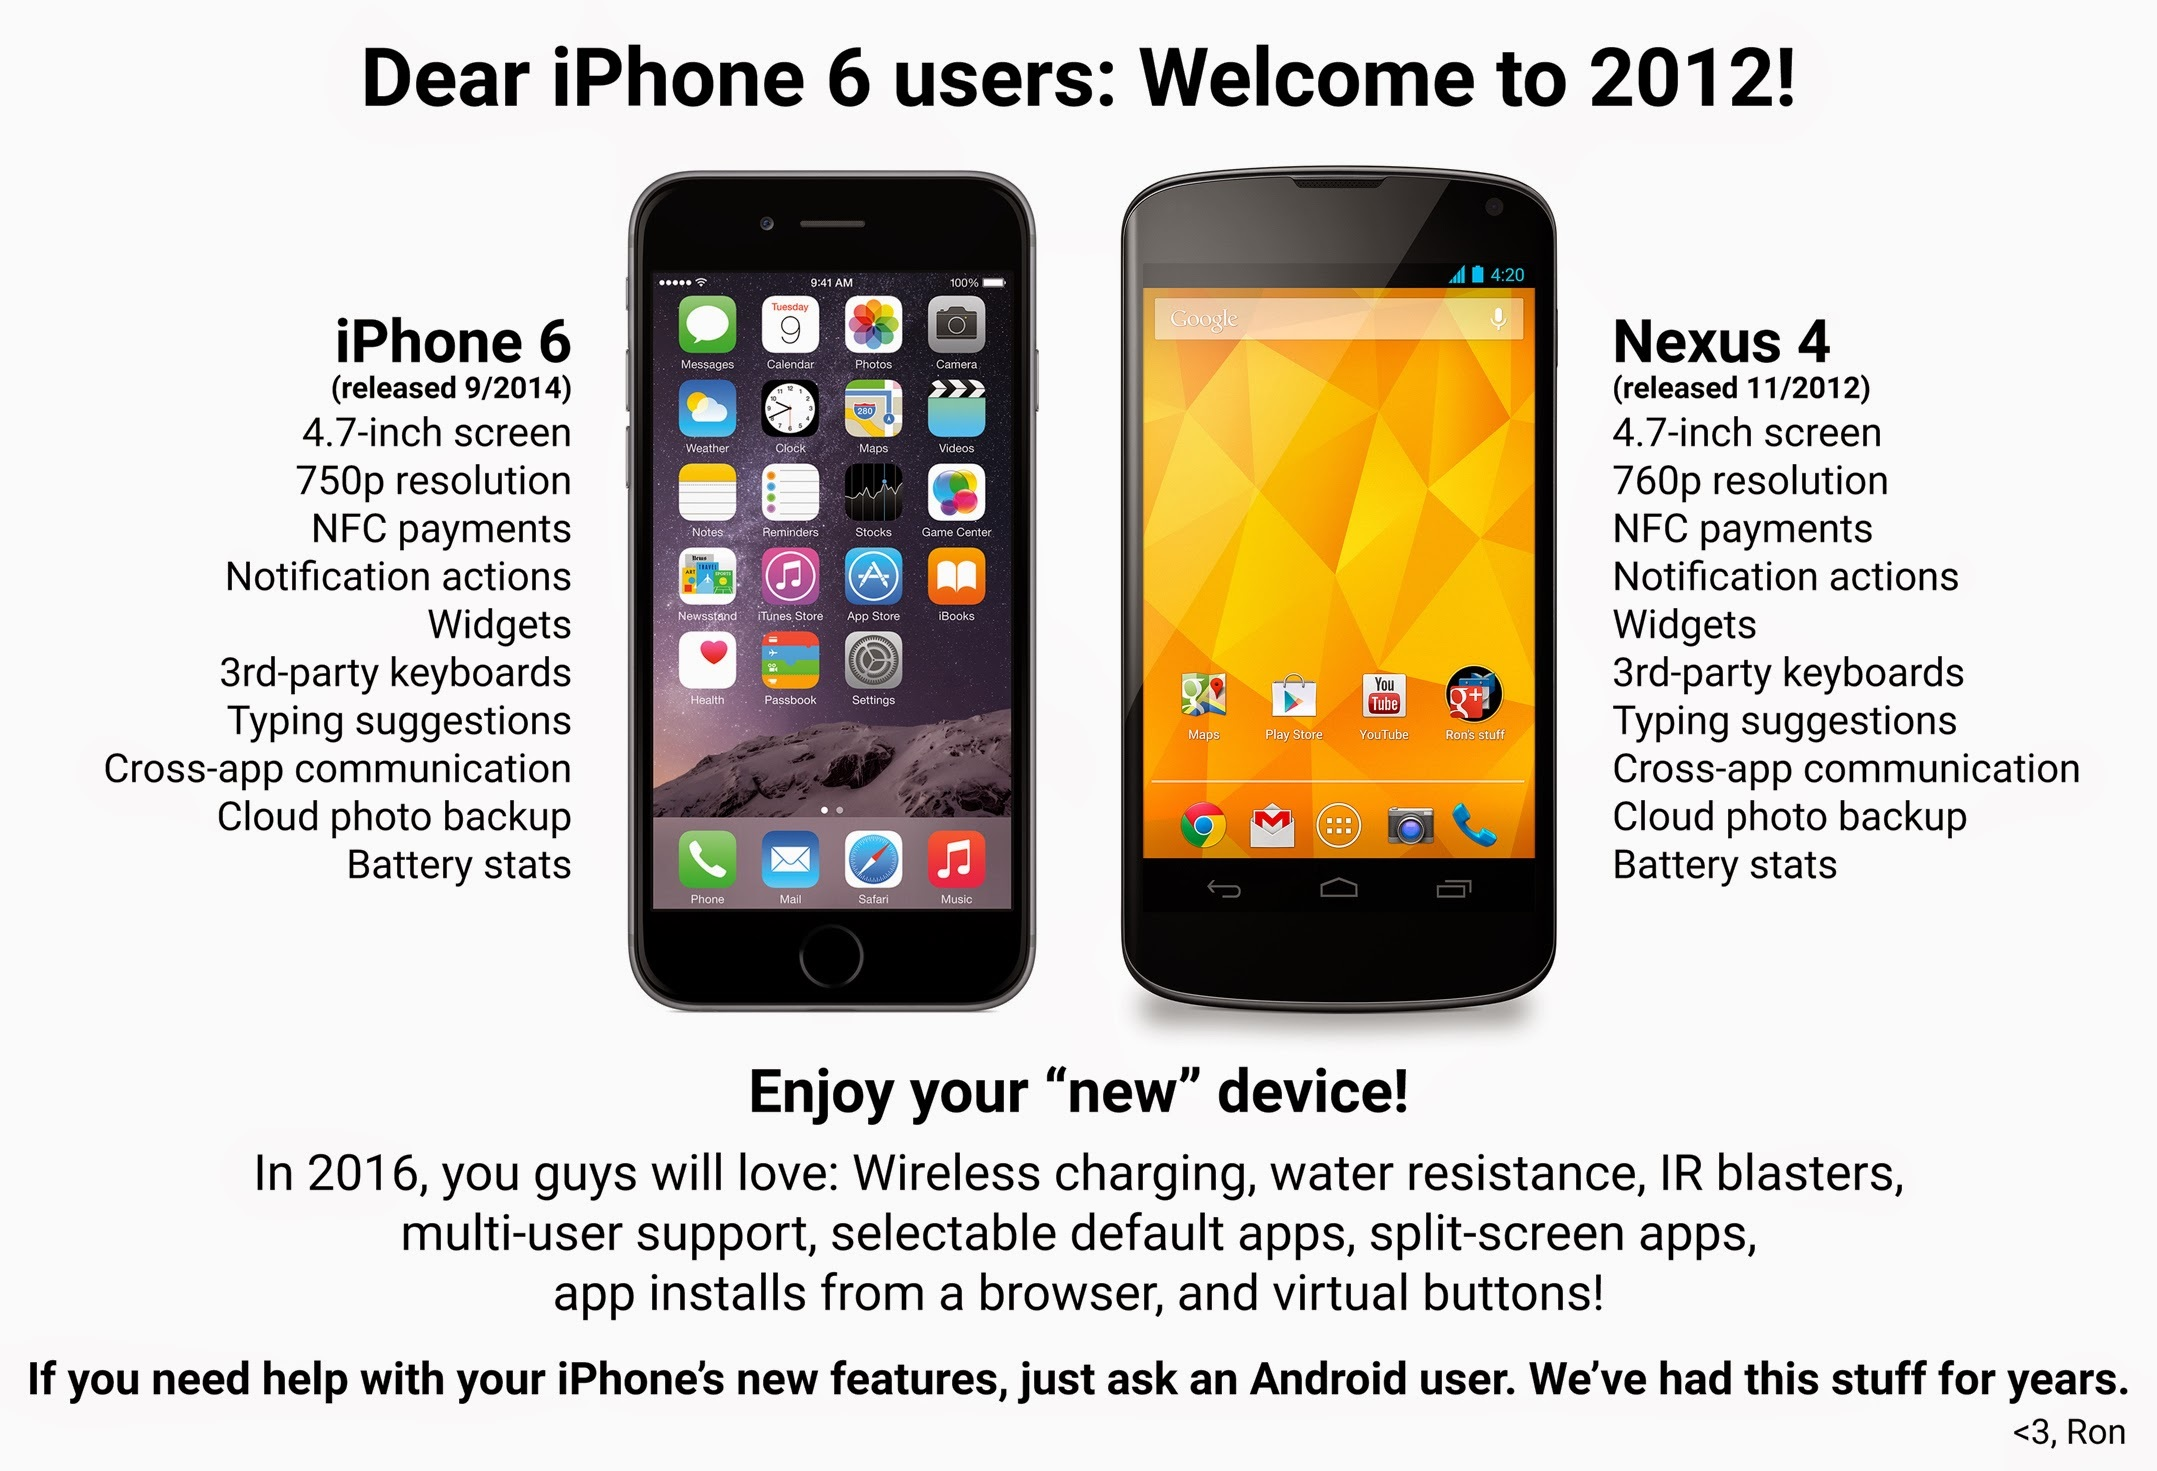 Welcome to 2012! 'New' Apple iPhone 6 mocked by rivals in advert